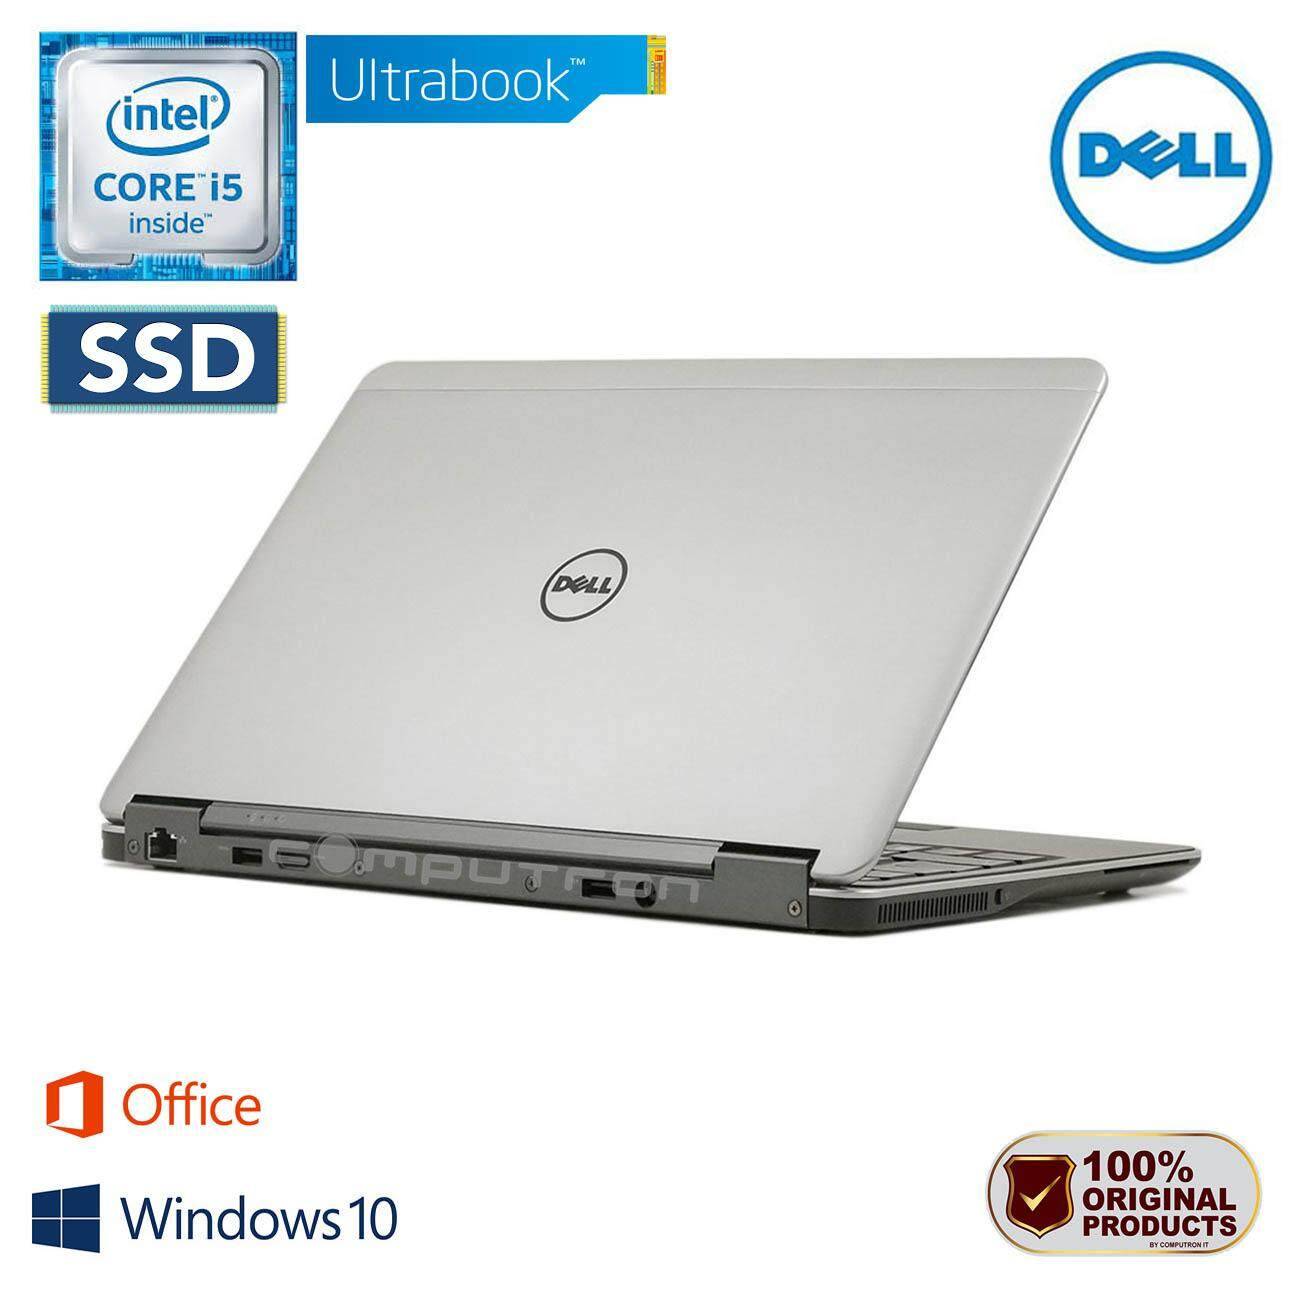 DELL LATITUDE E7240 ULTRABOOK [CORE I5-4300U/ 8GB RAM/ 256GB SSD] BOX PACK 1 YEAR WARRANTY Malaysia